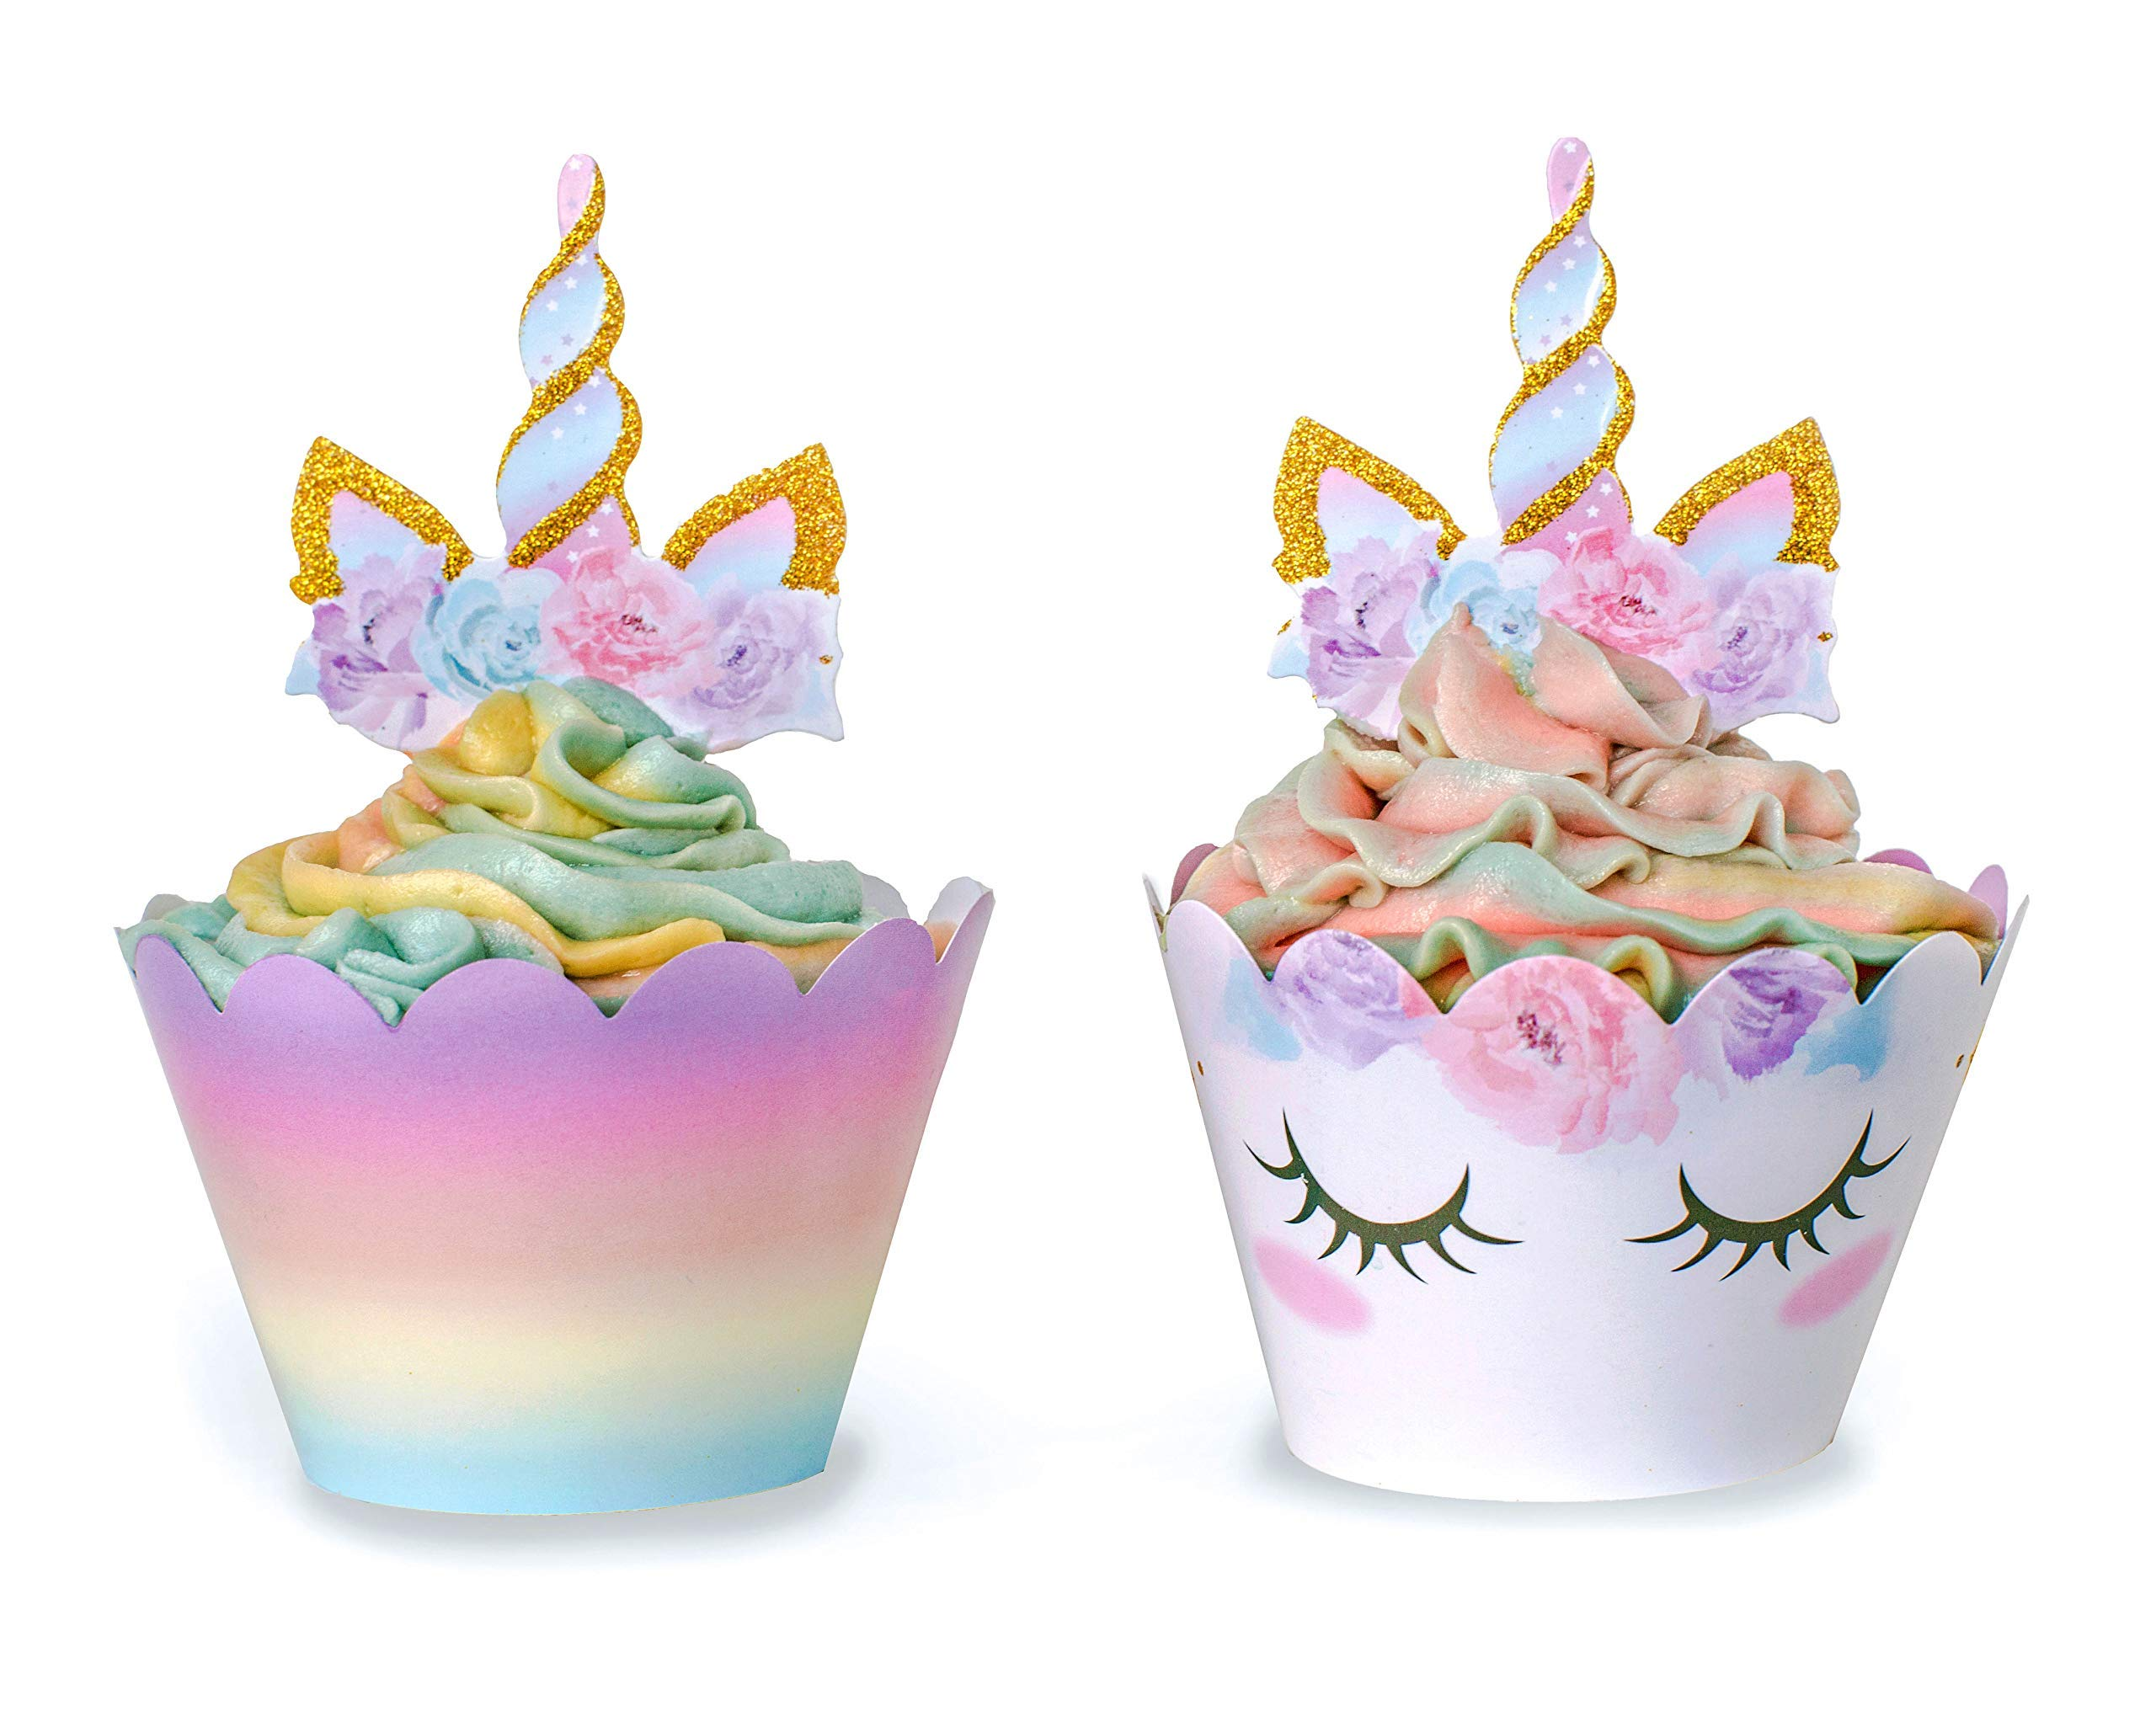 Unicorn Cupcake Decorations, Double Sided Toppers and Wrappers, Rainbow and Gold Glitter Decorations, Cute Girl's Birthday Party Supplies, 48 pcs - By Xeren Designs